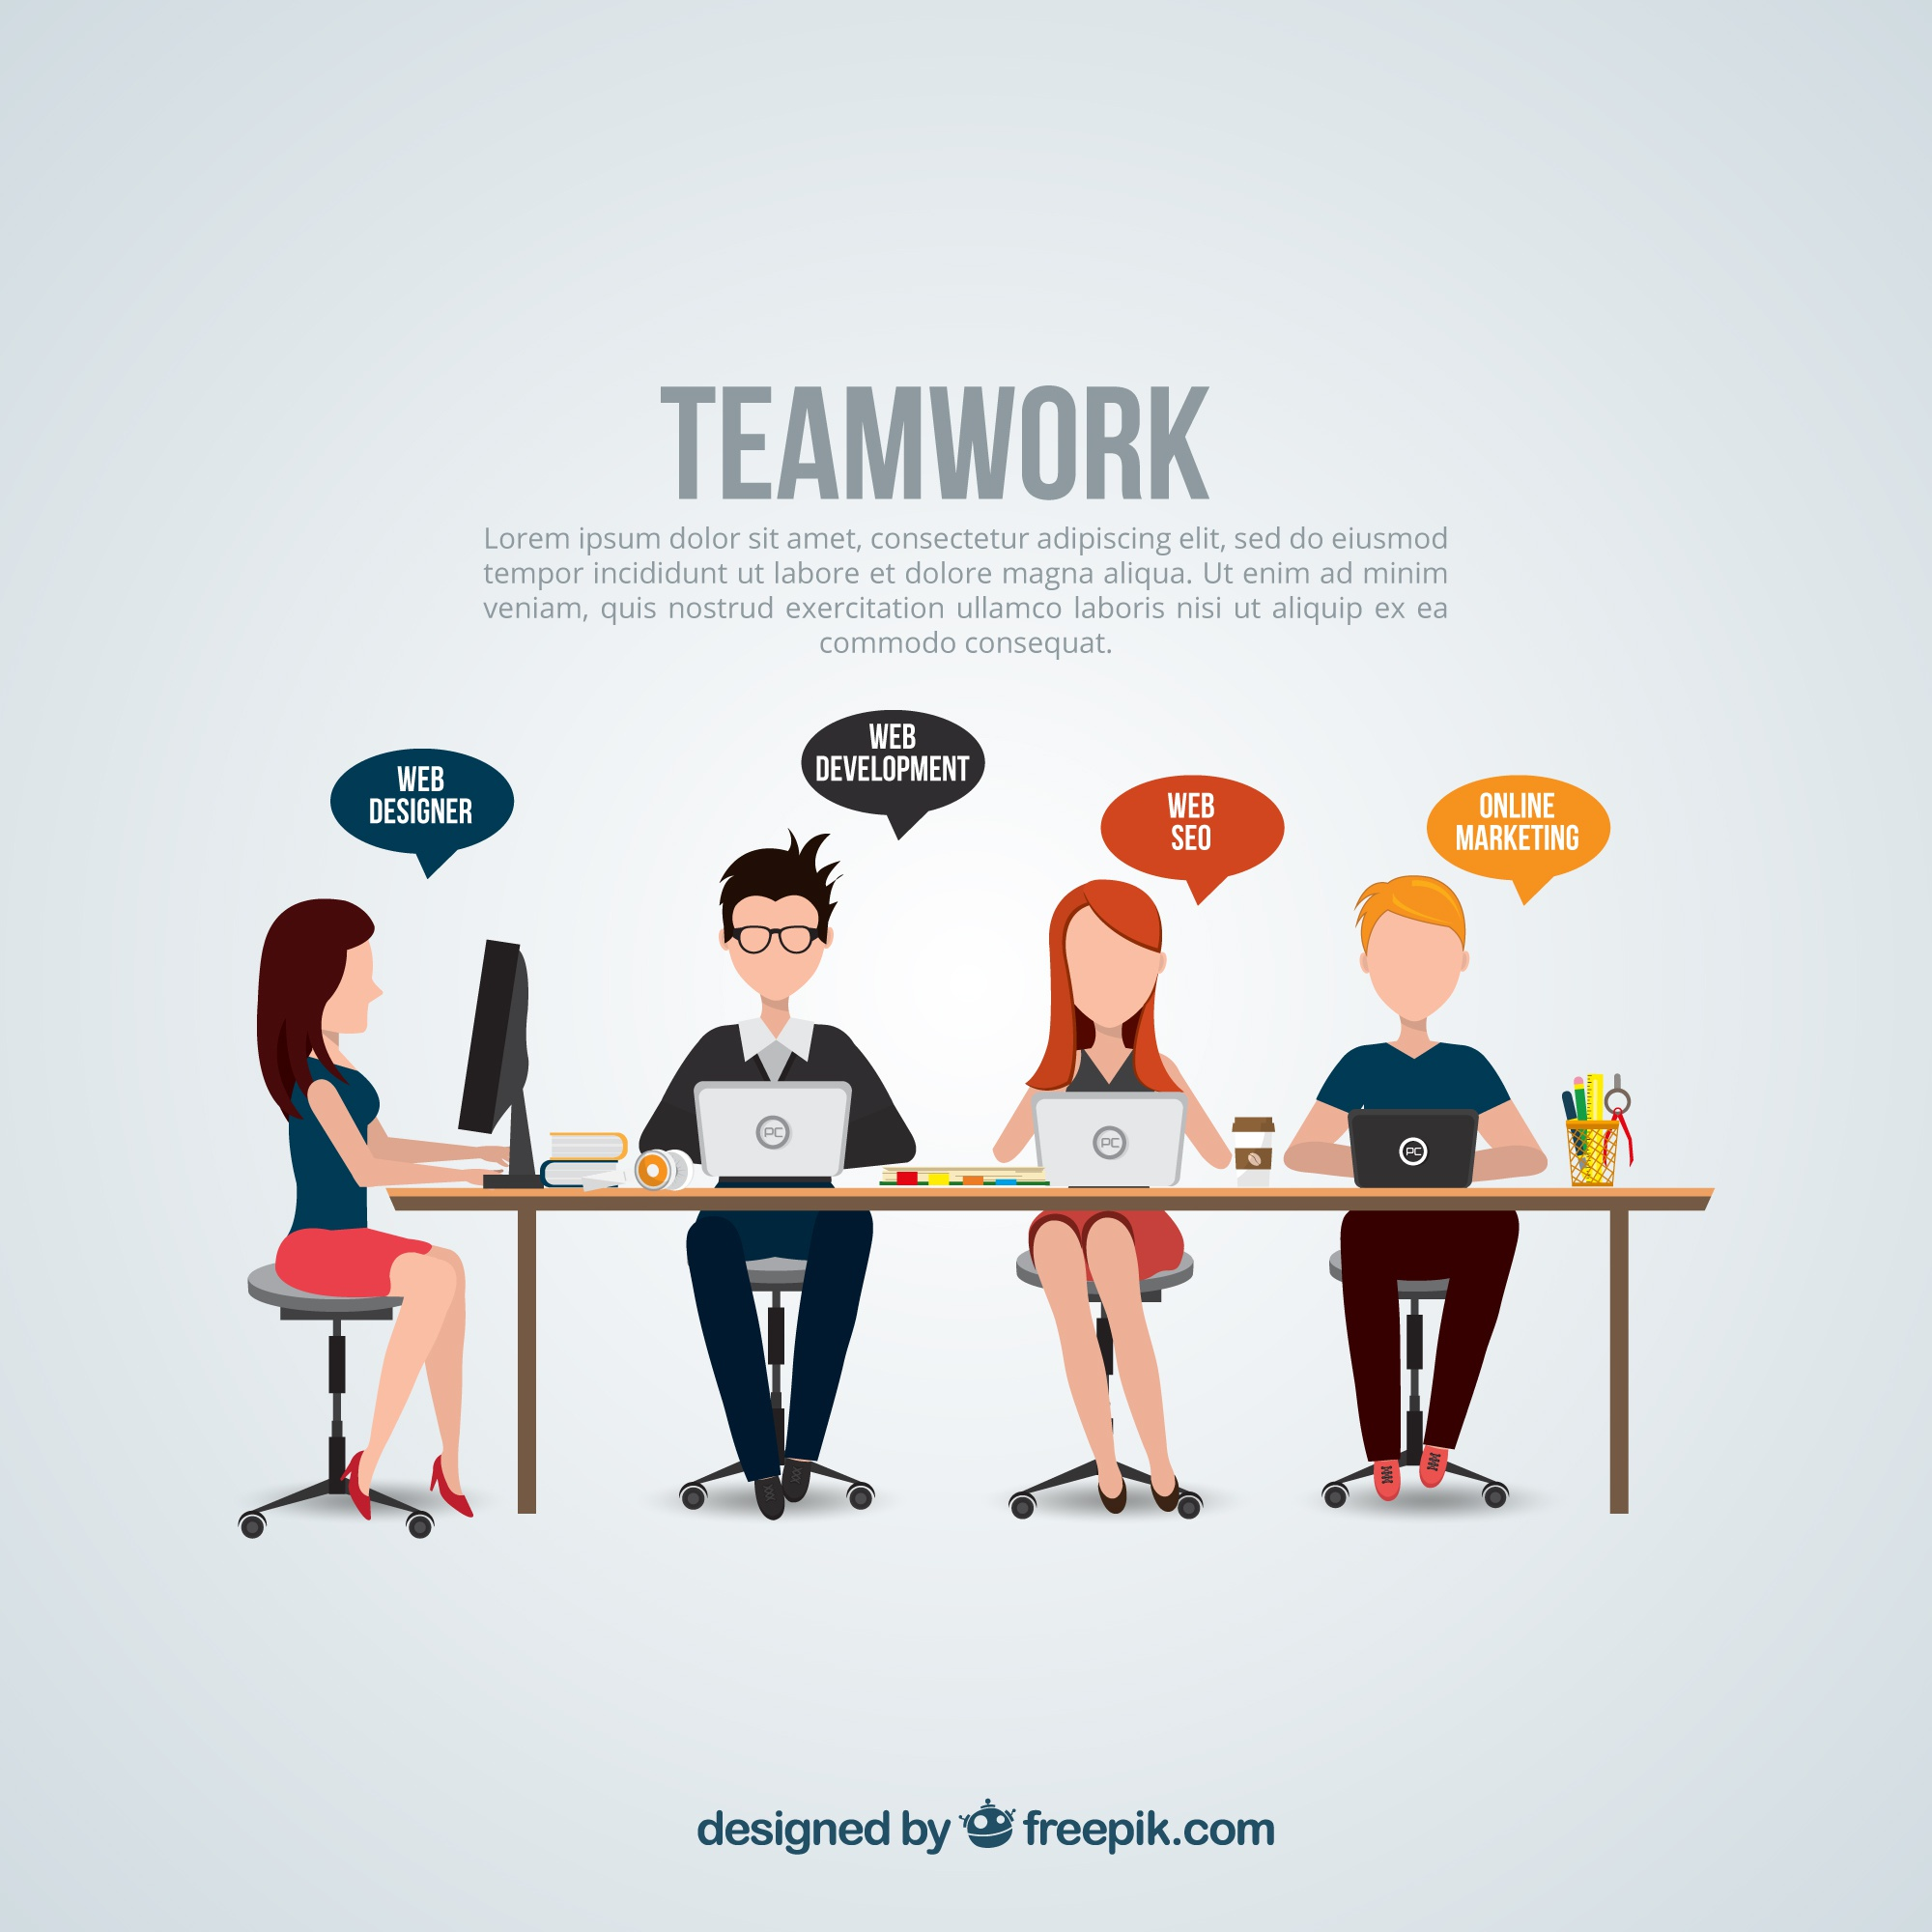 Teamwork template